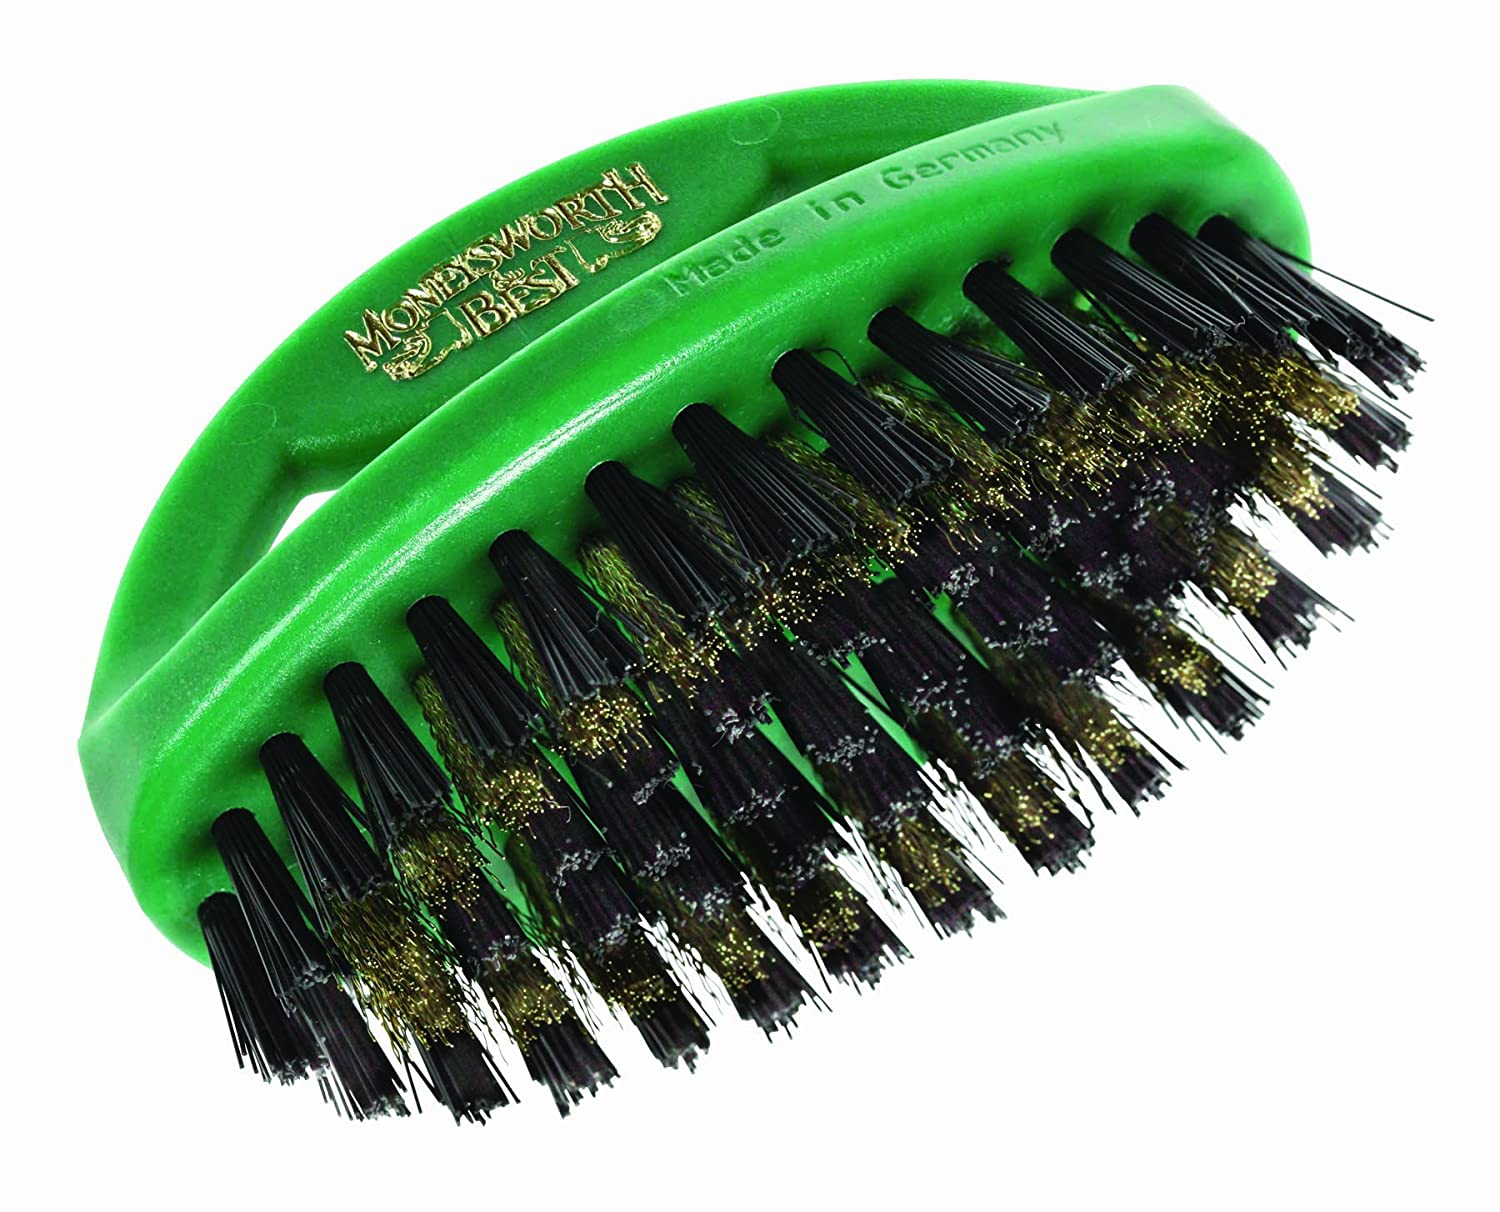 Moneysworth and Best Sheepskin Cleaning Brush Moneysworth & Best 30808